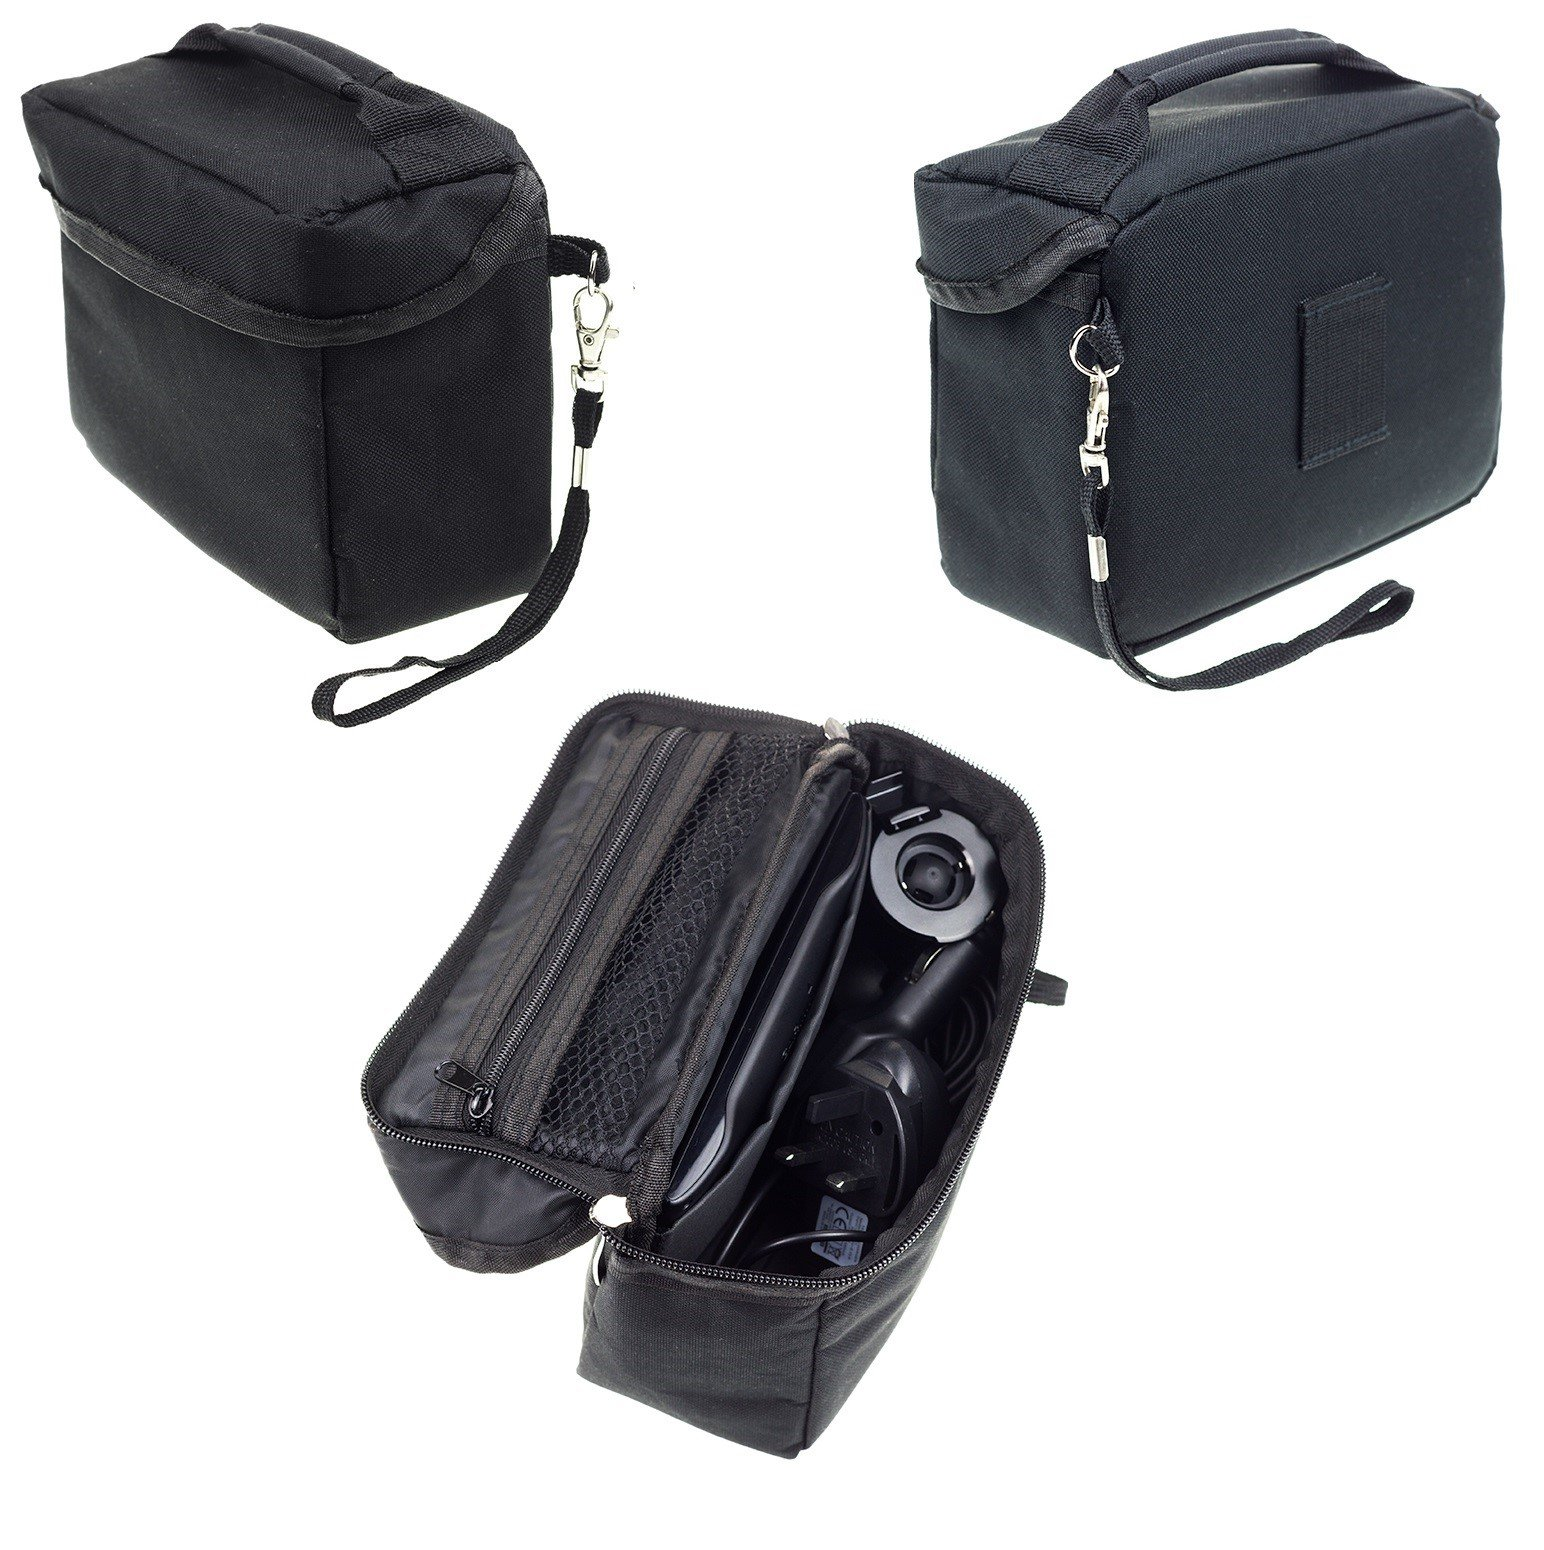 Travel Bag Carrying Case For Garmin Drive DriveSmart DriveAssist 51 50 40 DEZL 580 Nuvi 57 Zumo 396 TomTom Via 1425 1524 1525 M TM Go 52 Rider 550 500 Trucker 550 GPS Sat Nav With Accessory Storage